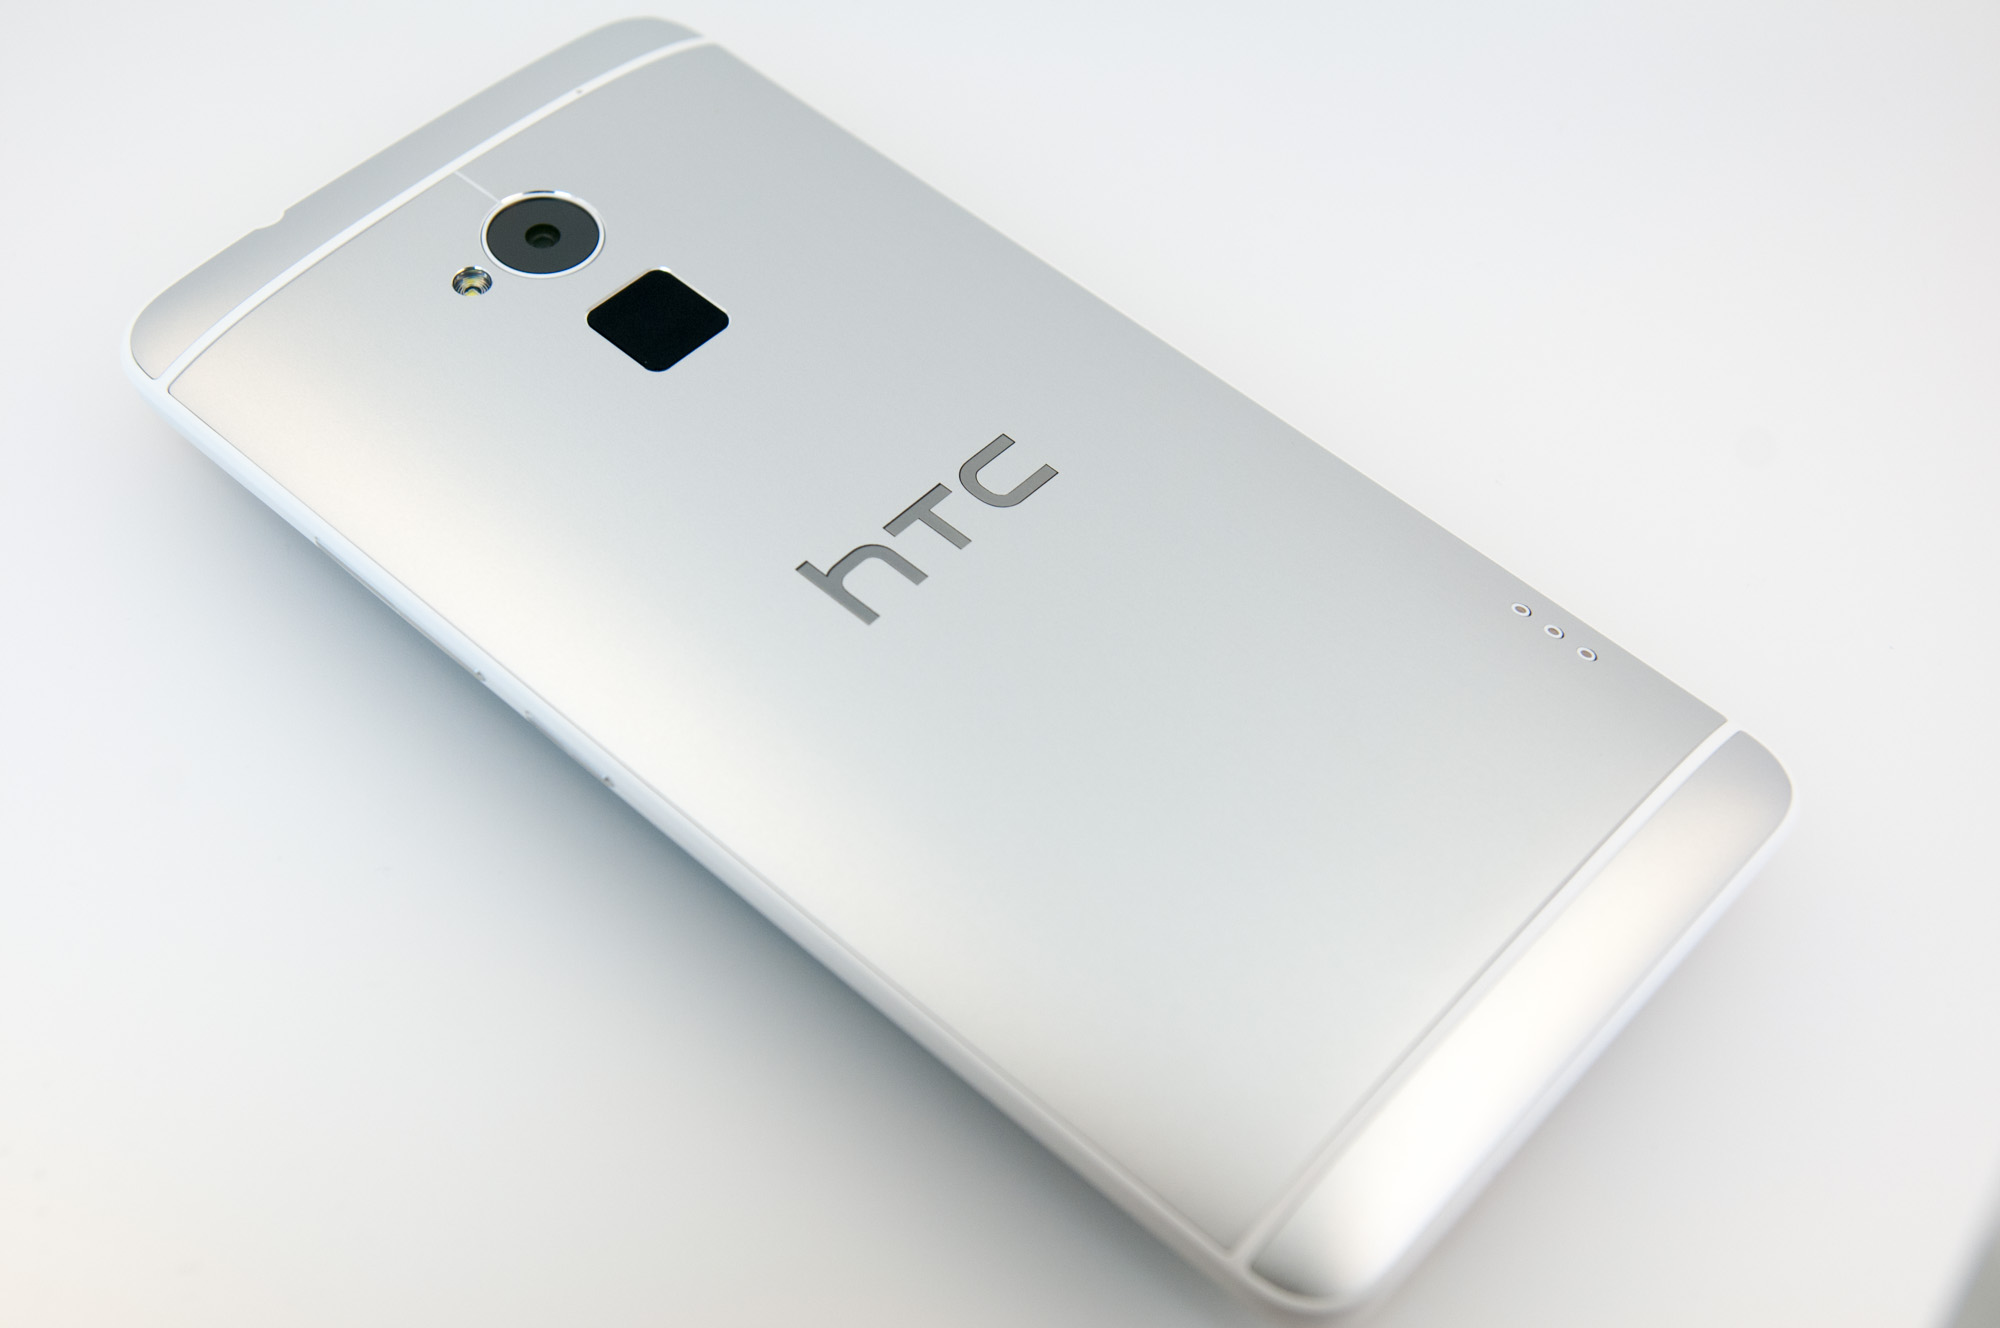 That Fingerprint Scanner - HTC One max Review - It's Huge